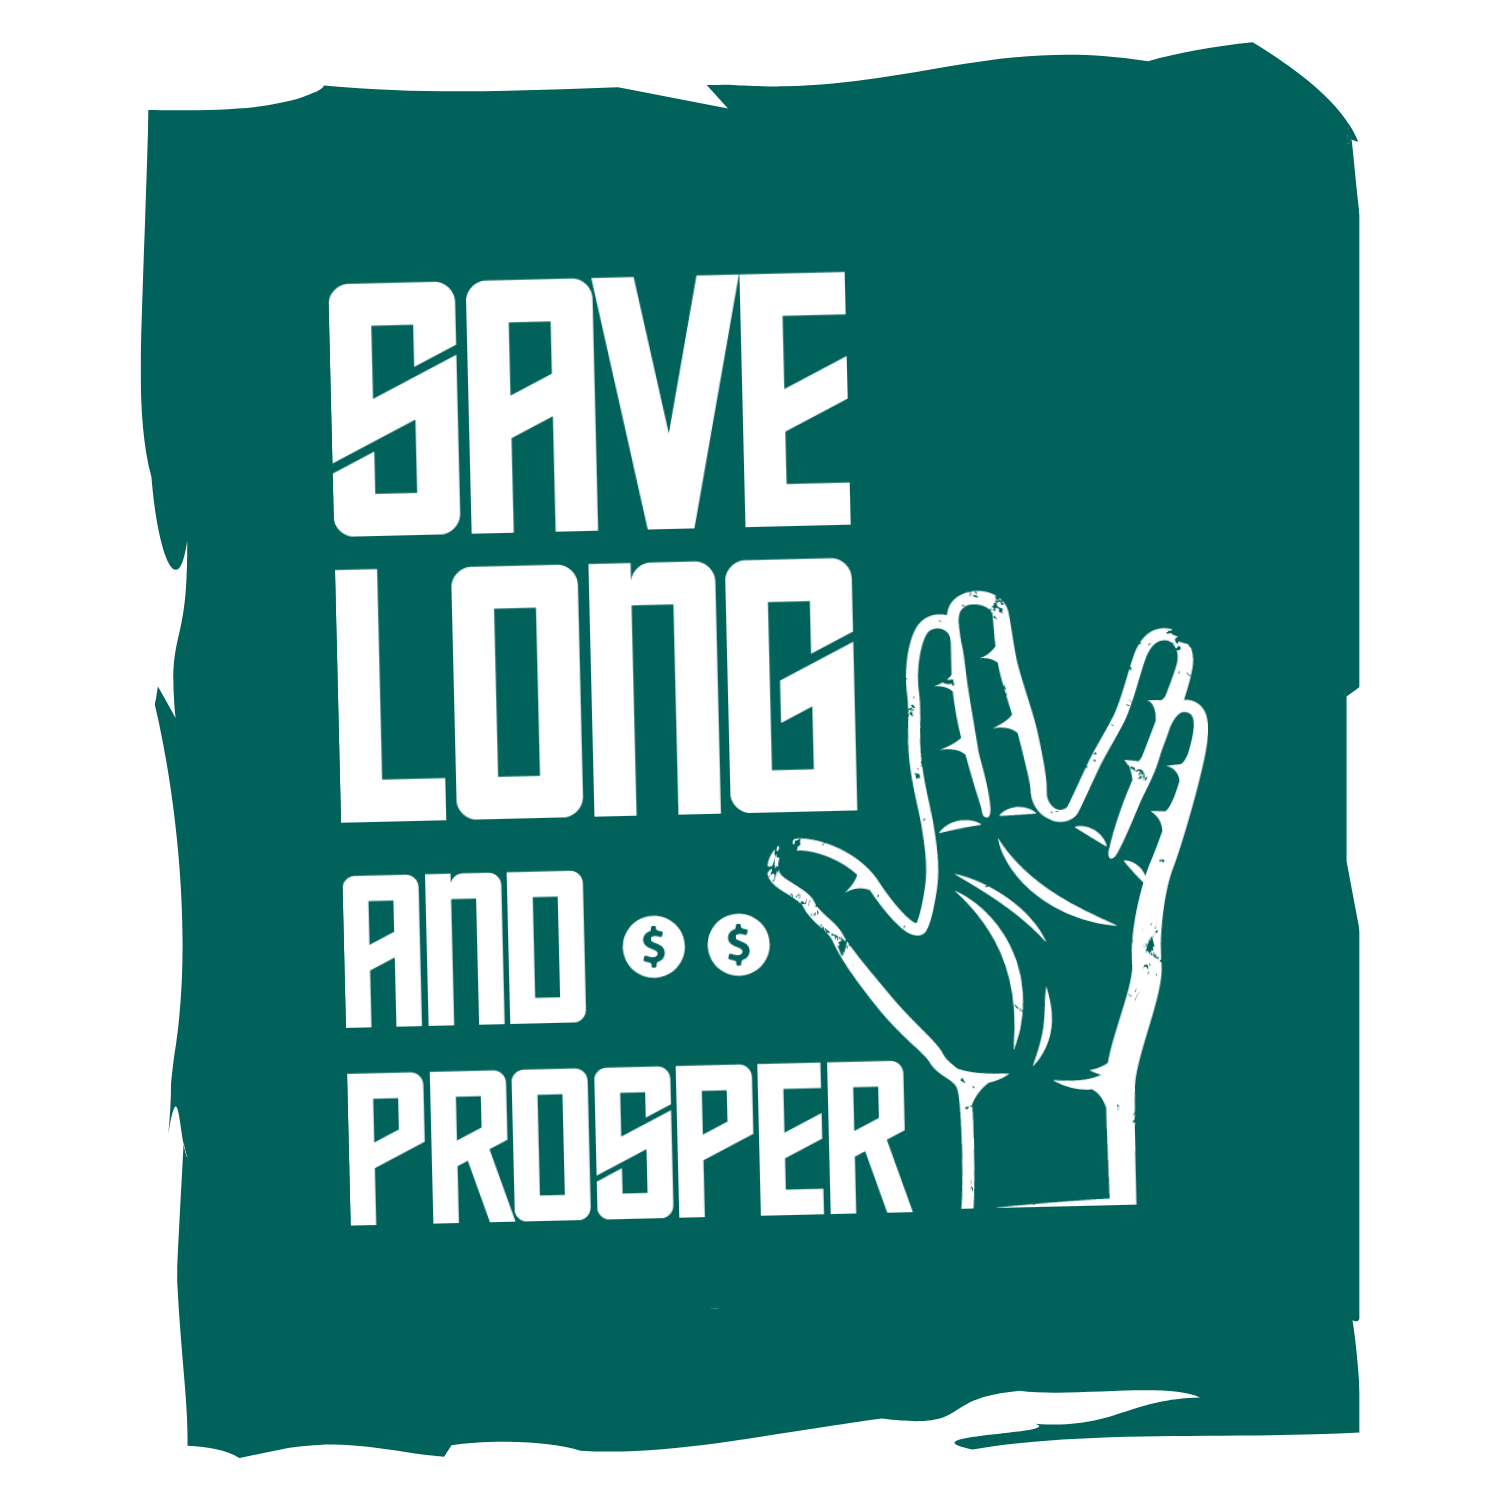 Save Long and Prosper